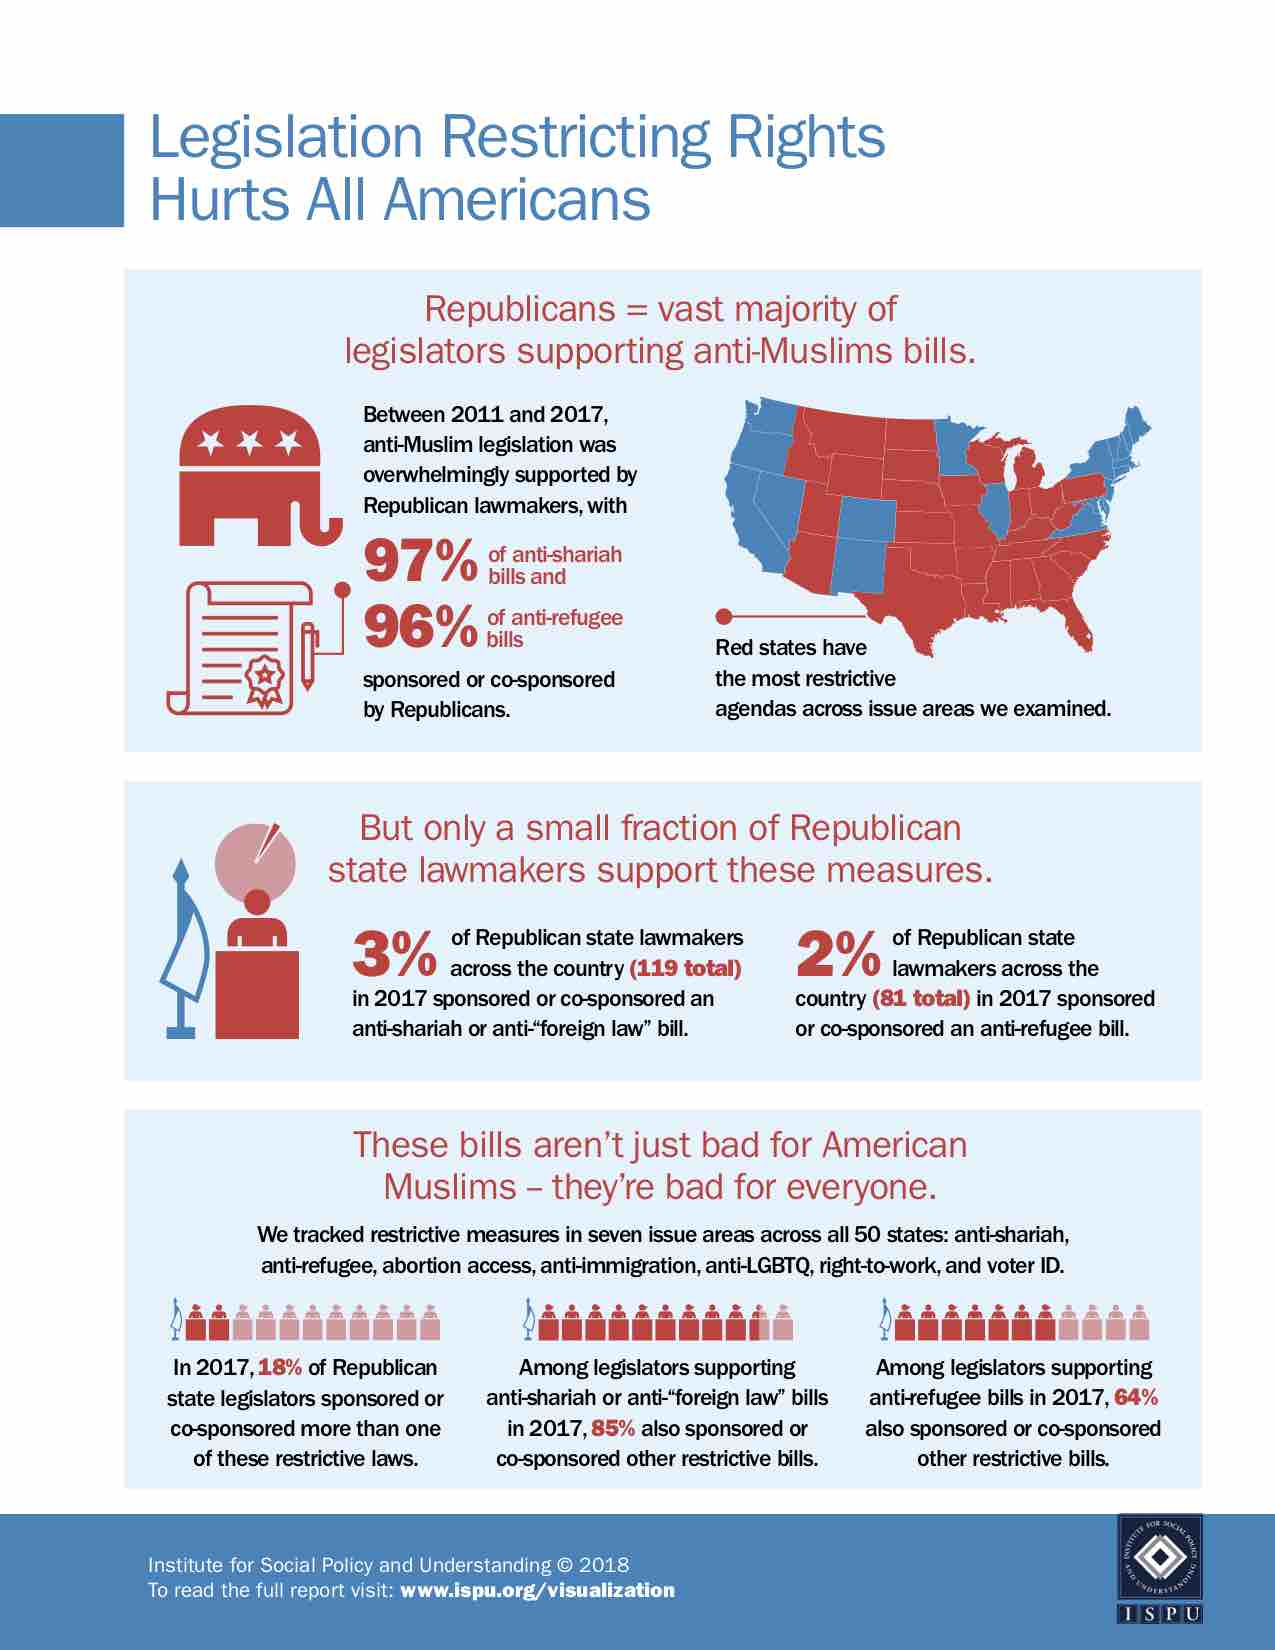 Legislation Restricting Rights Hurts All Americans infographic